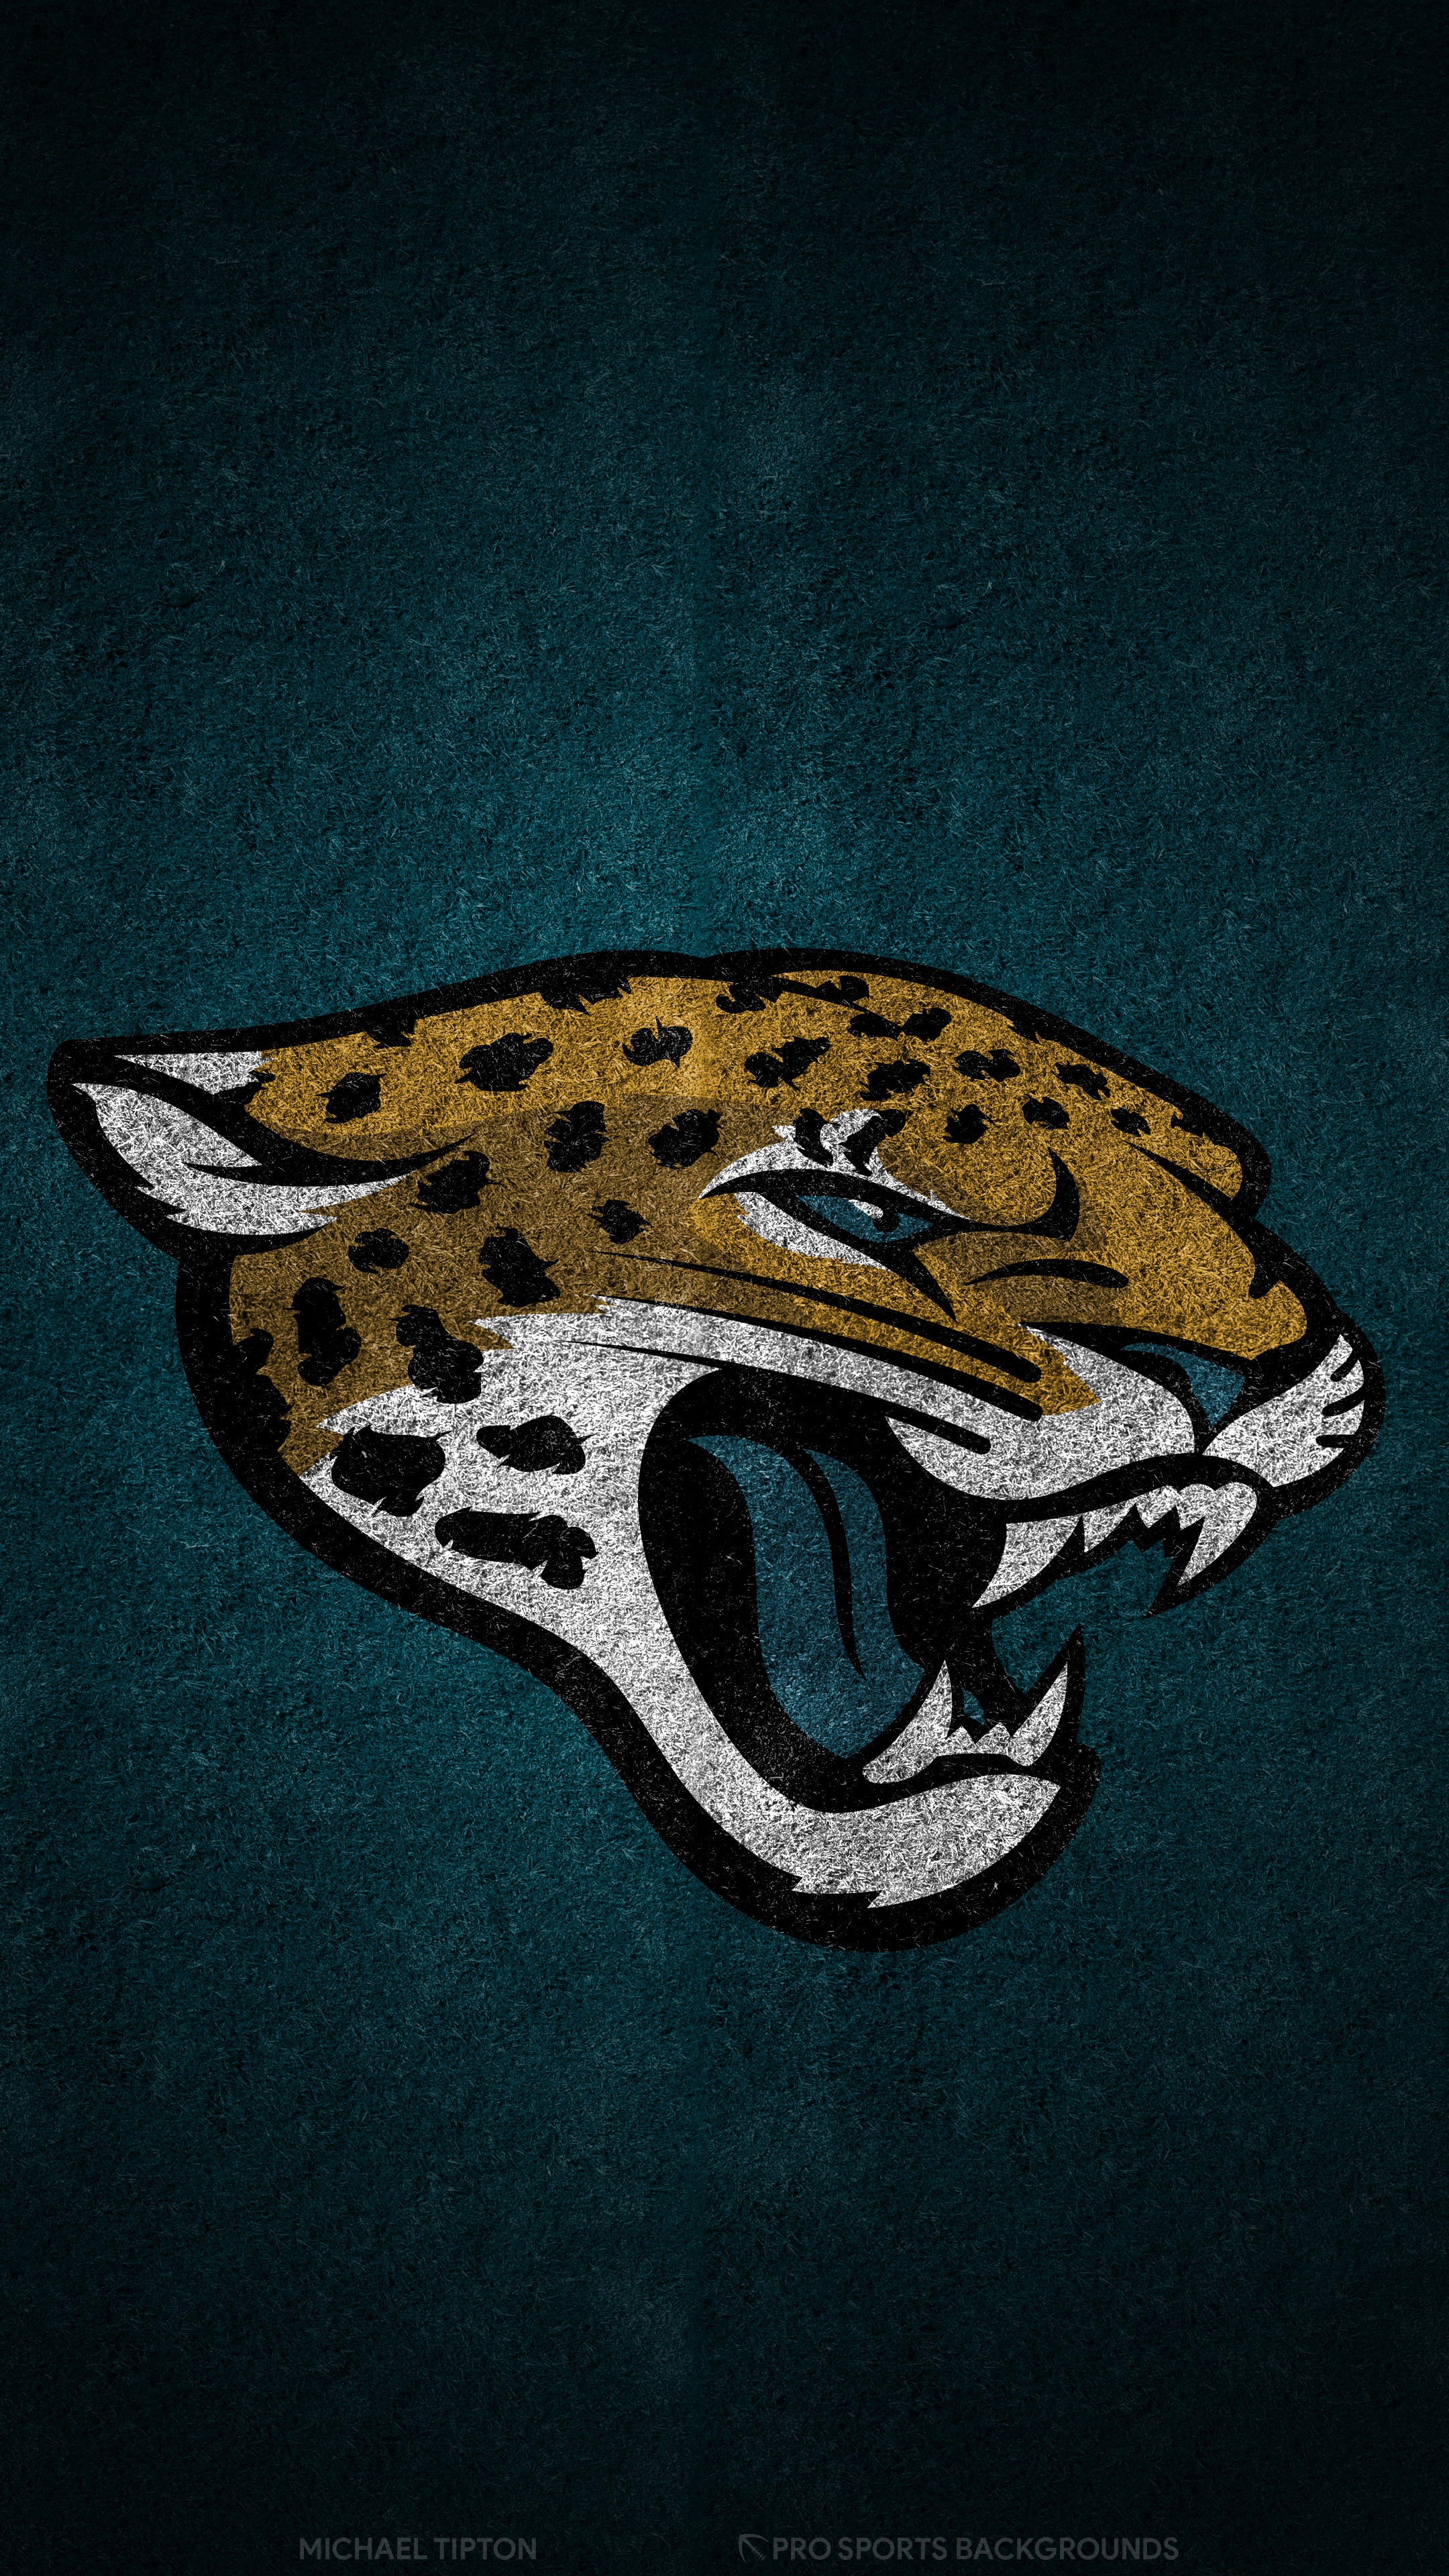 2019 Jacksonville Jaguars Wallpapers Pro Sports Backgrounds 2160x3840